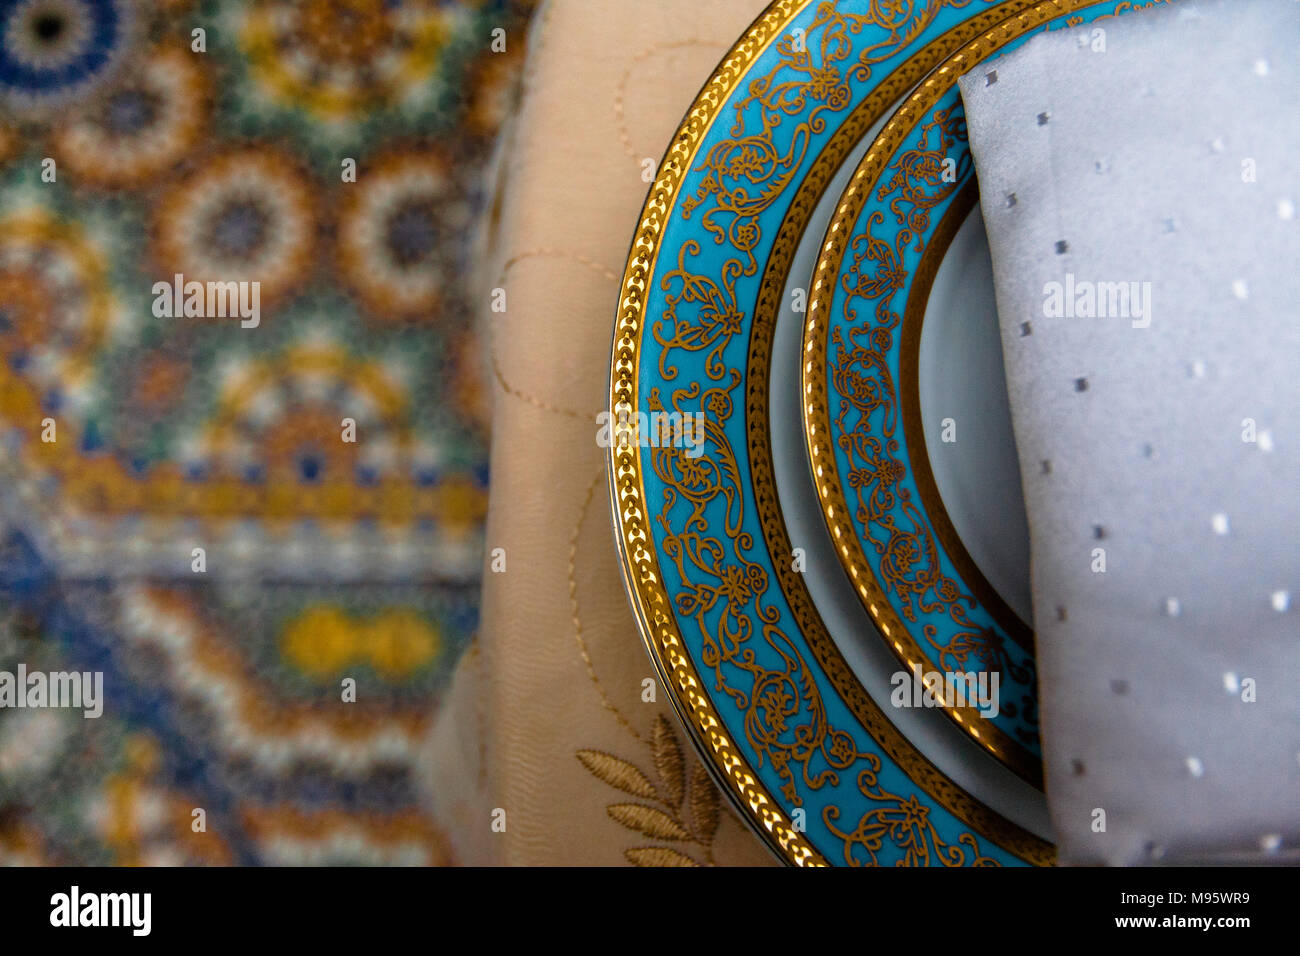 A Closeup Of Table Setting In Muslim Restaurant, Tablecloth, Plates And  Napkin All With Arabic Design, Morocco.